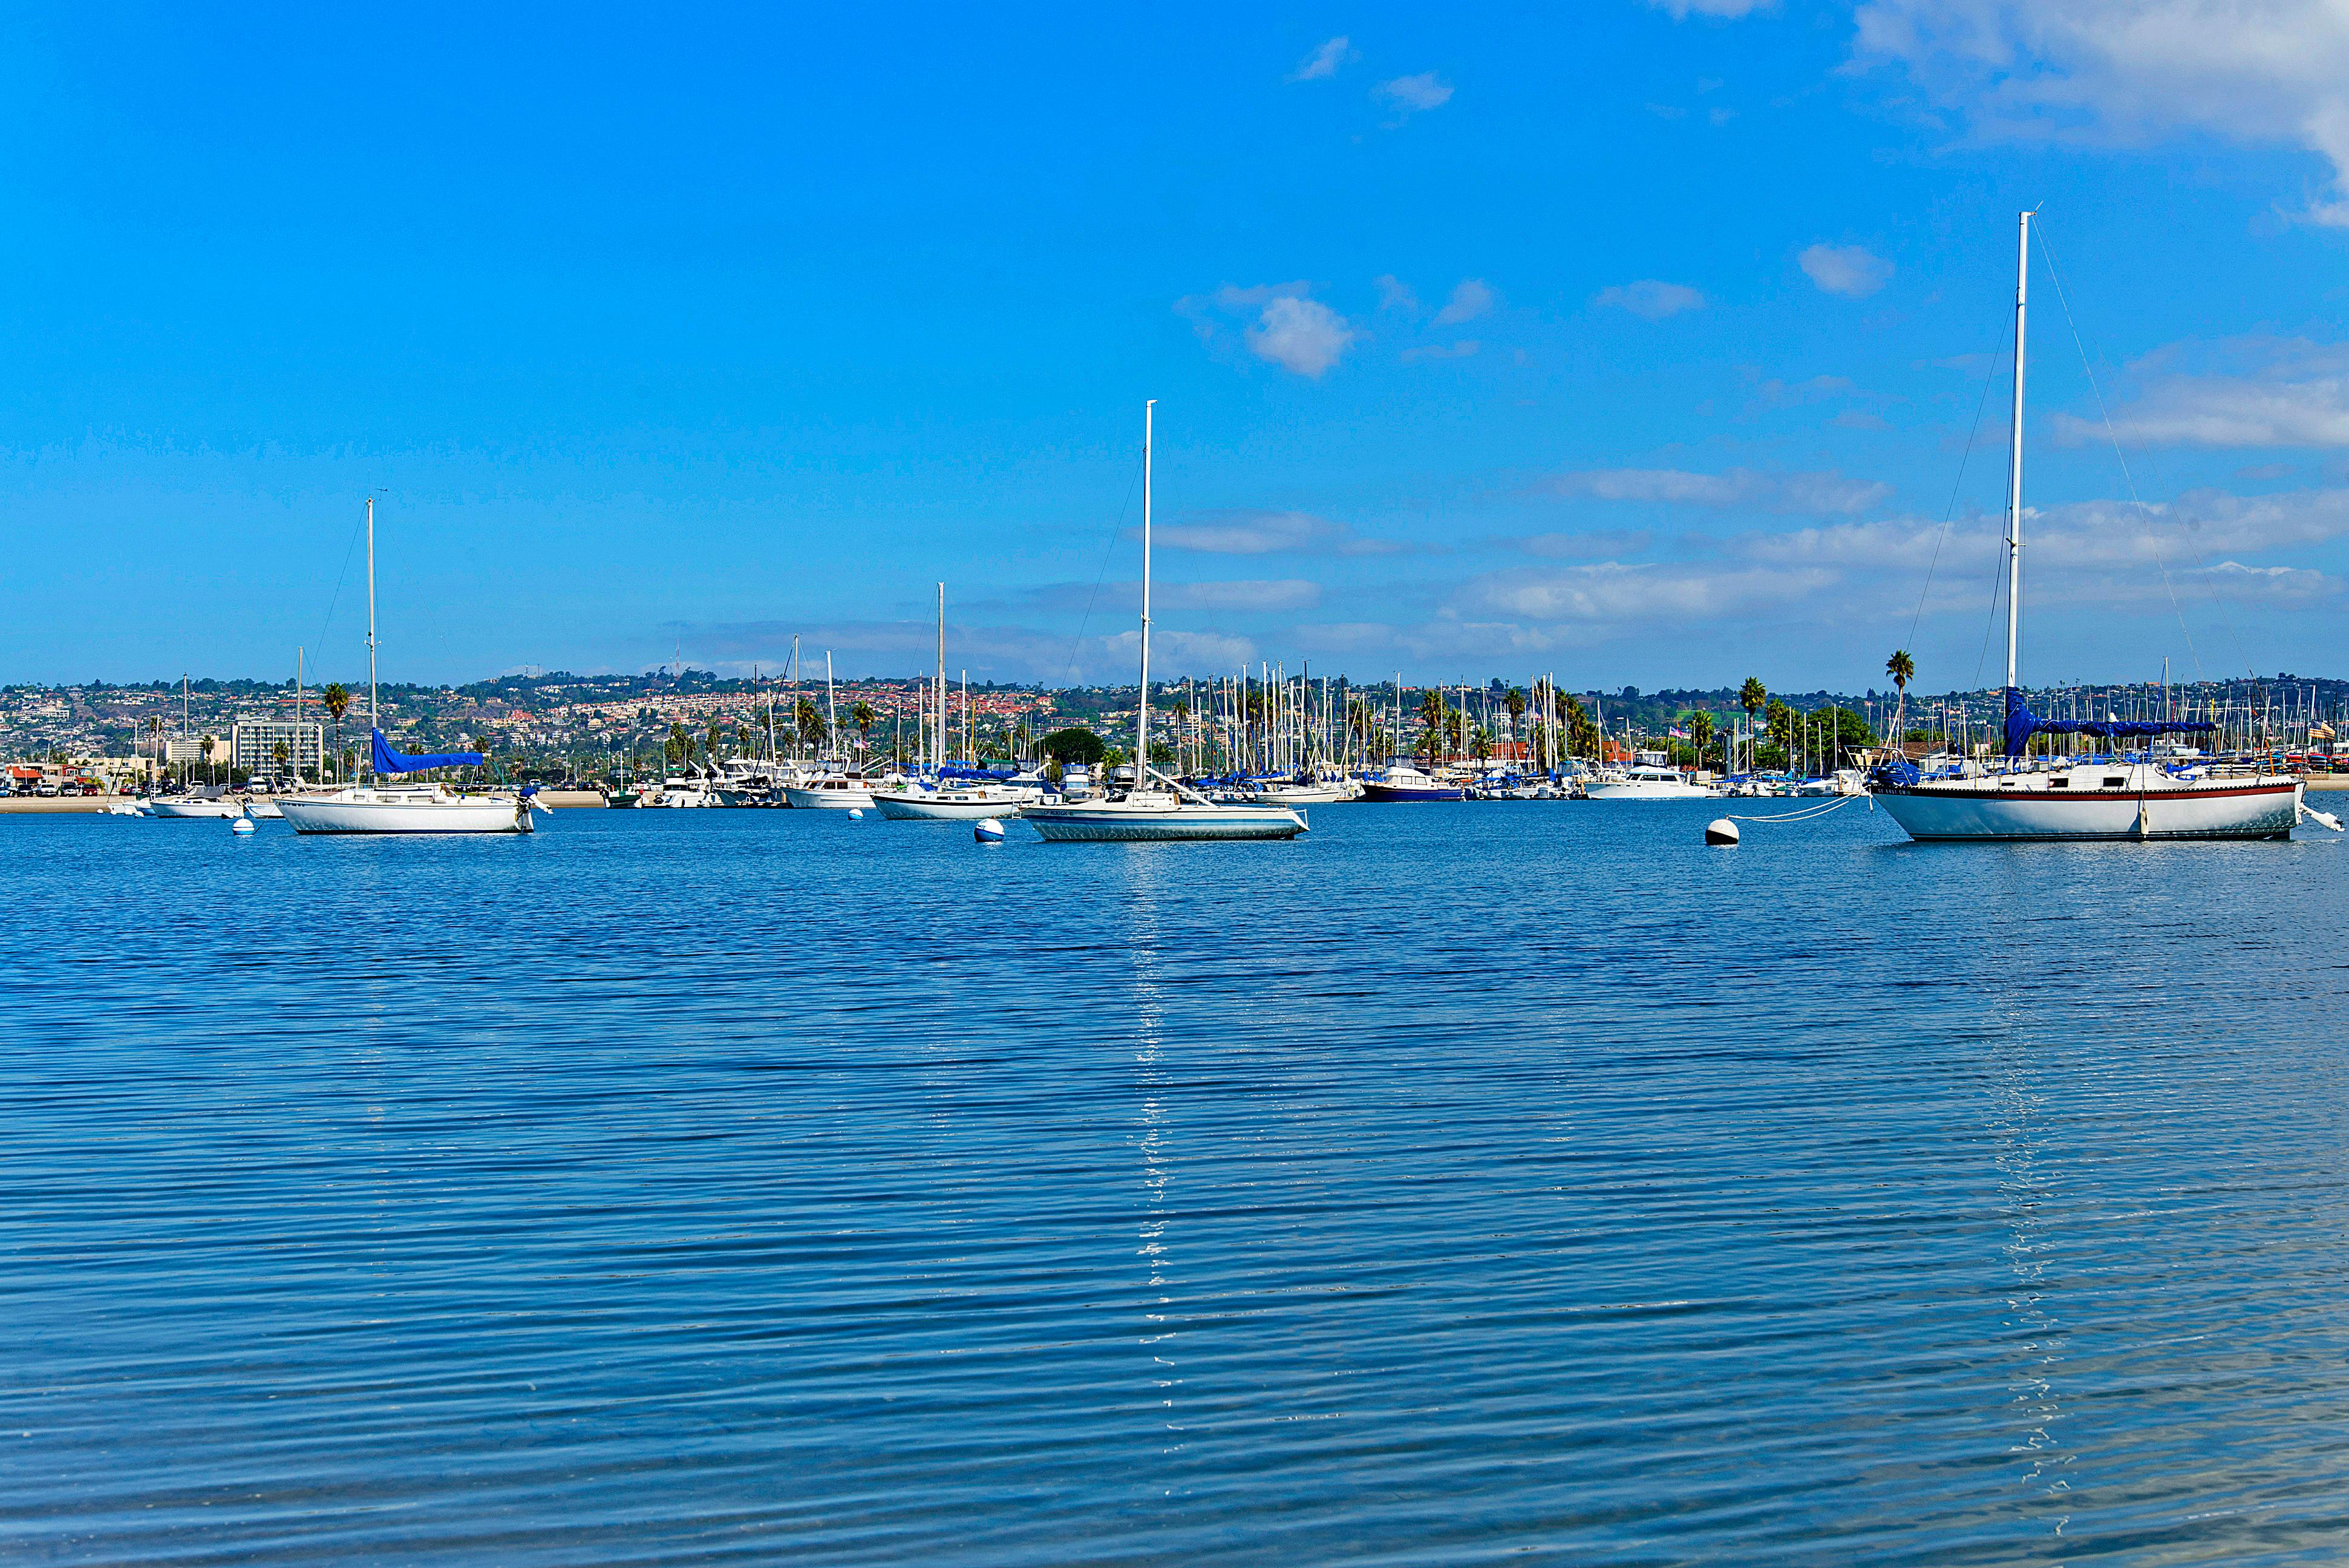 From boat charters to bayside strolls, San Diego is an ideal getaway for water lovers.